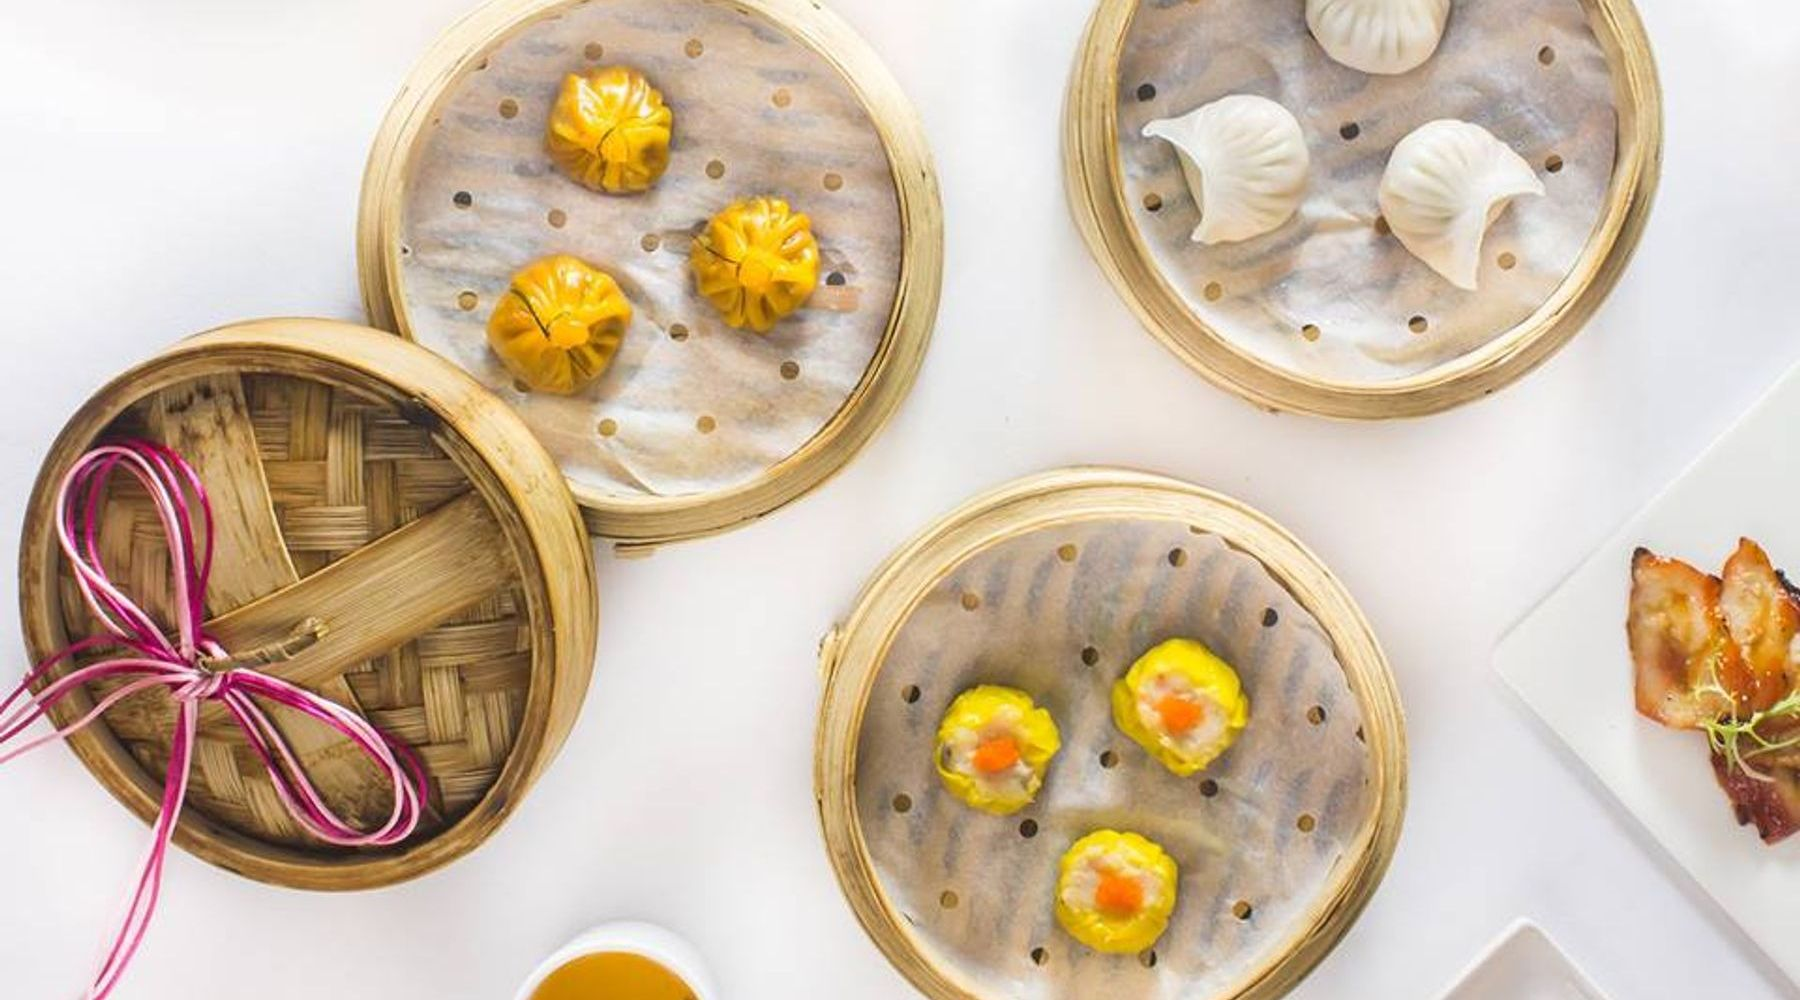 The Ultimate Dim Sum Guide: 18 Places in Singapore to Get Edible Works of Art